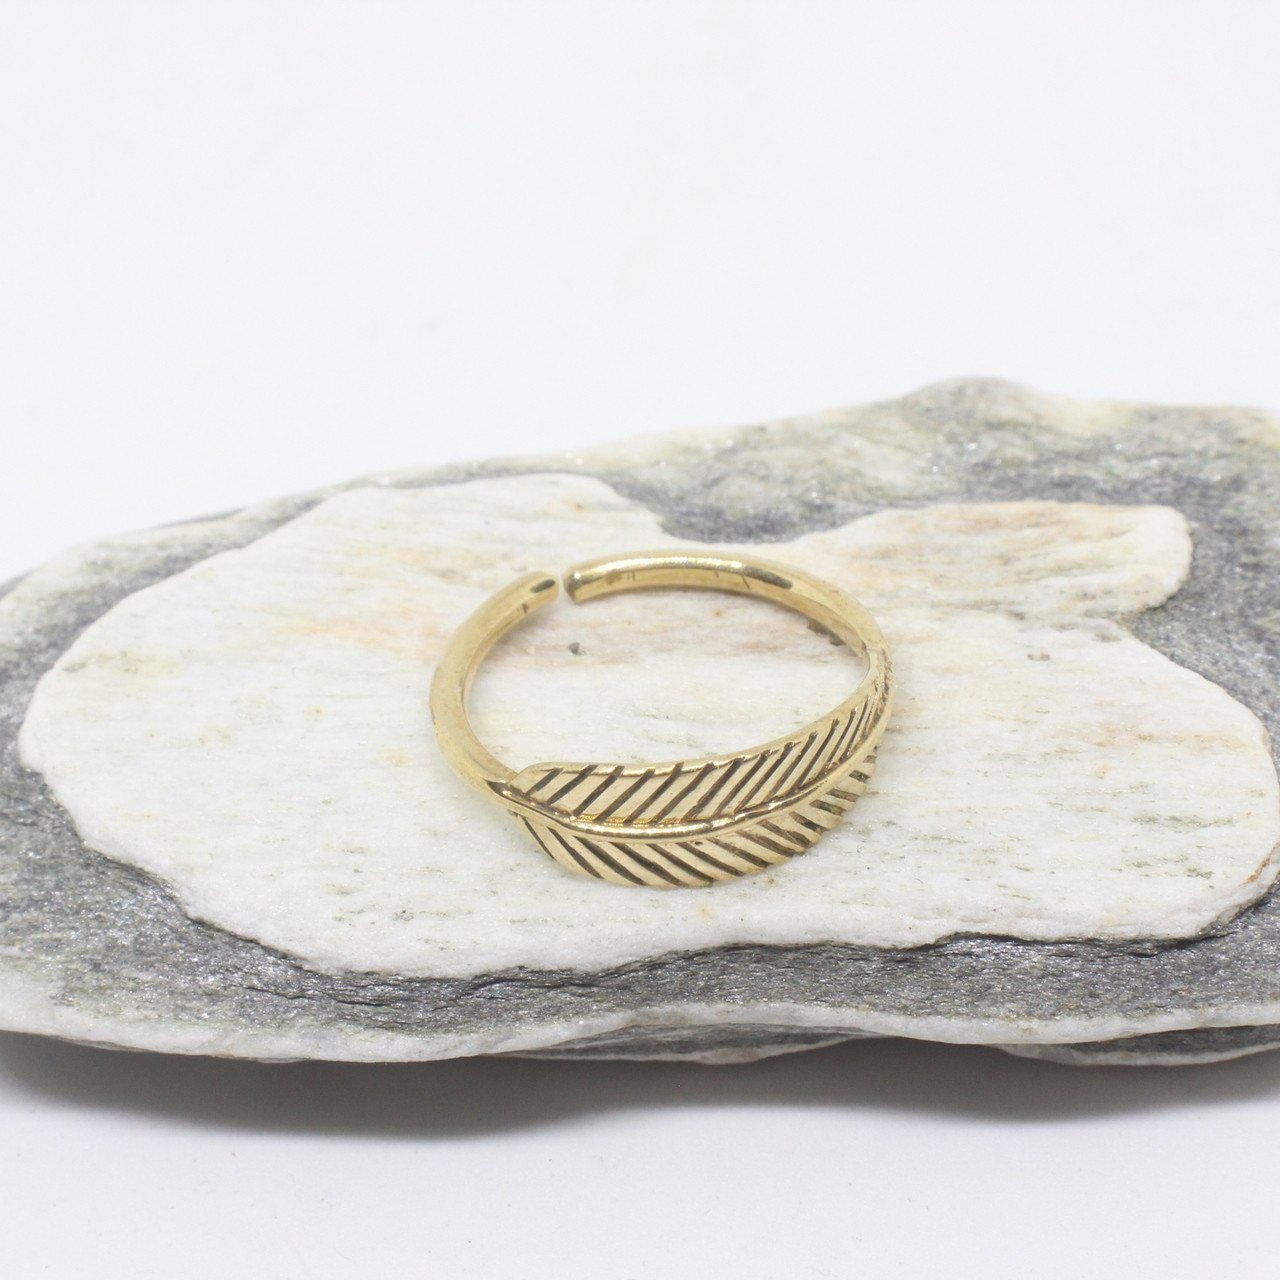 Leaf Brass Ring-Jewellery-Not specified-The Outpost NZ